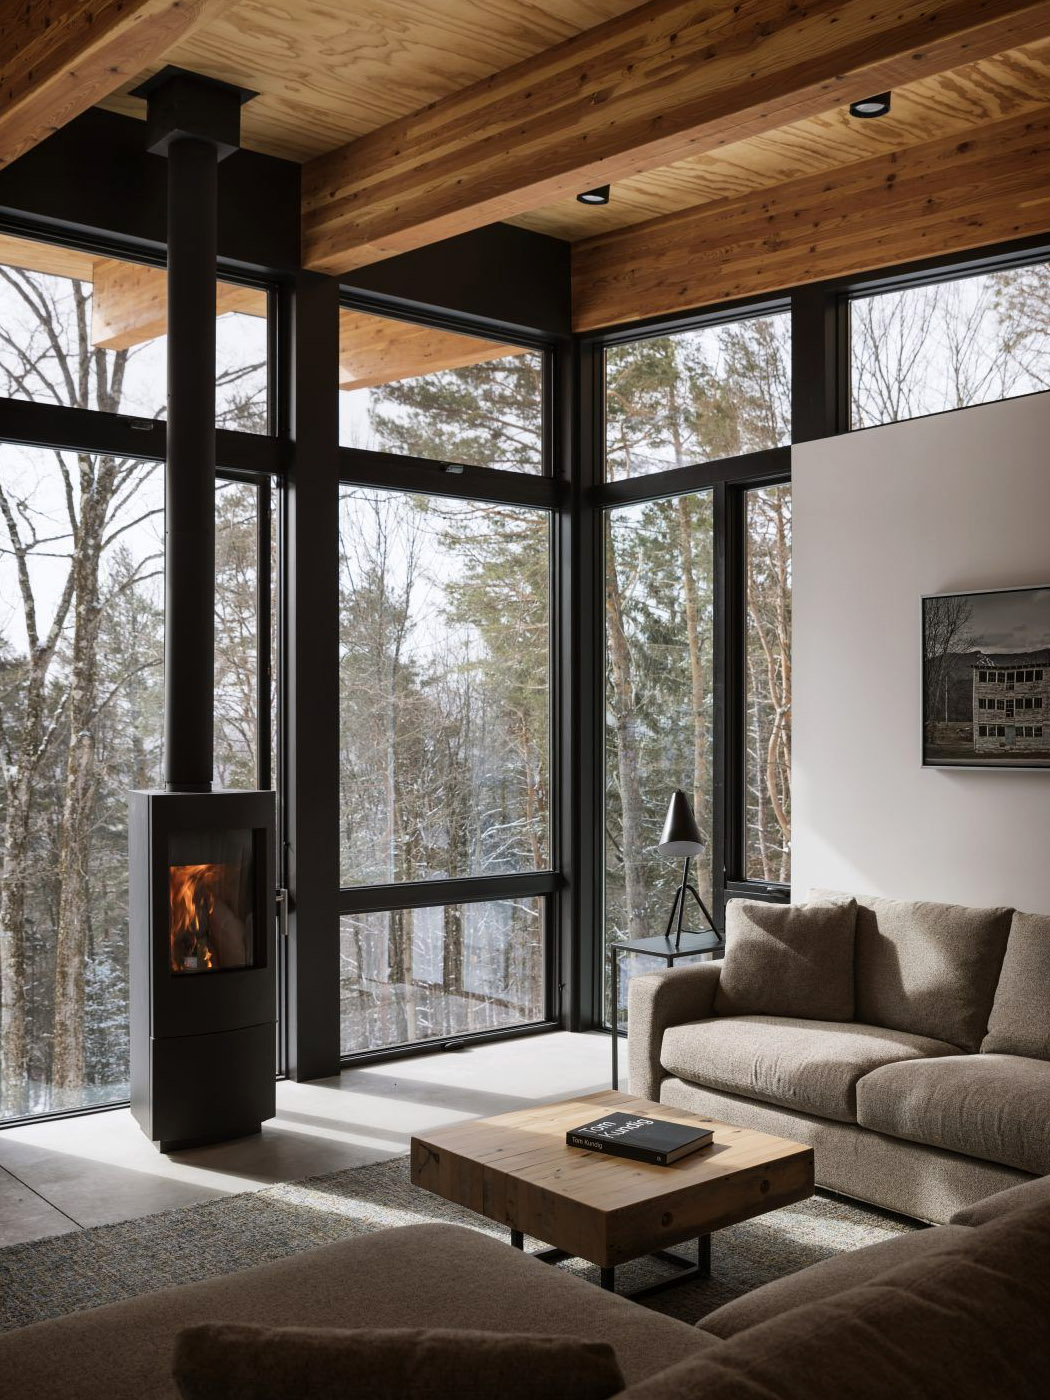 This cozy winter cabin in Vermont was built to help you connect with your family and nature!